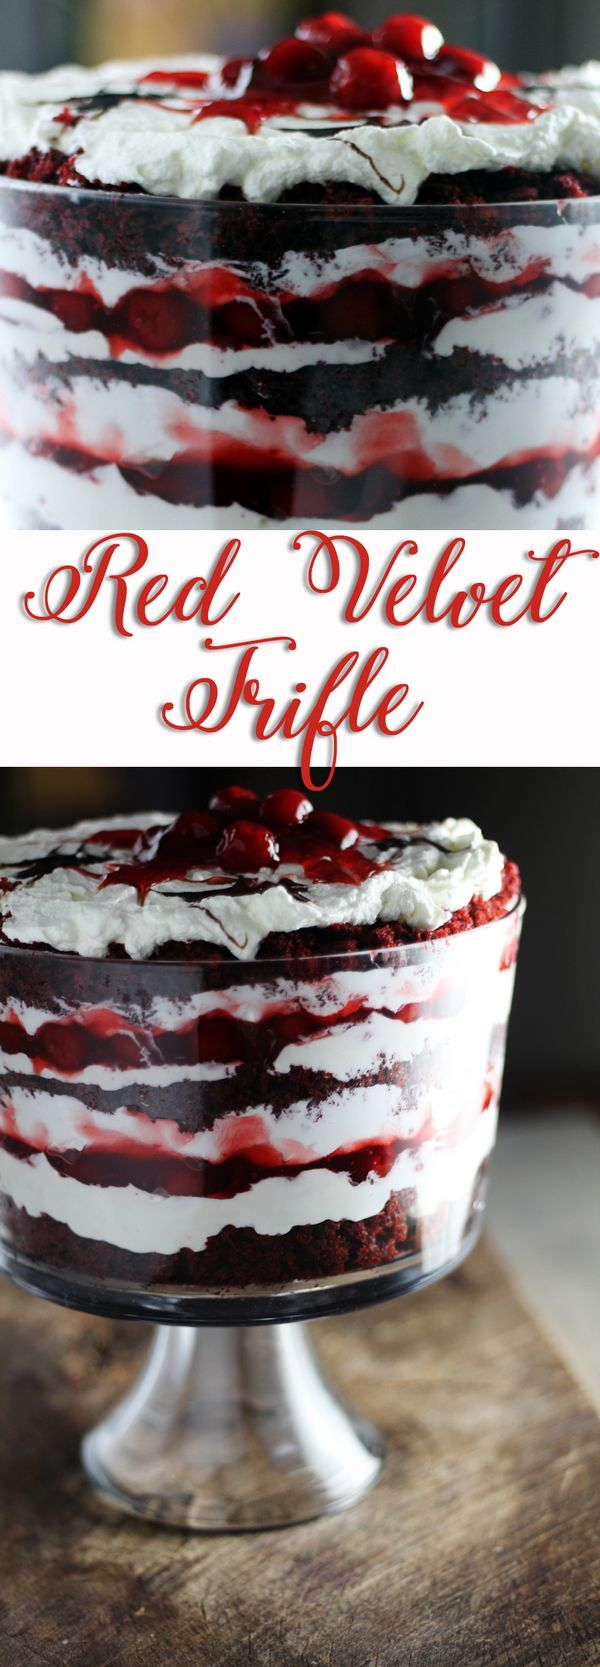 Easy & Delicious Red Velvet Trifle Recipe